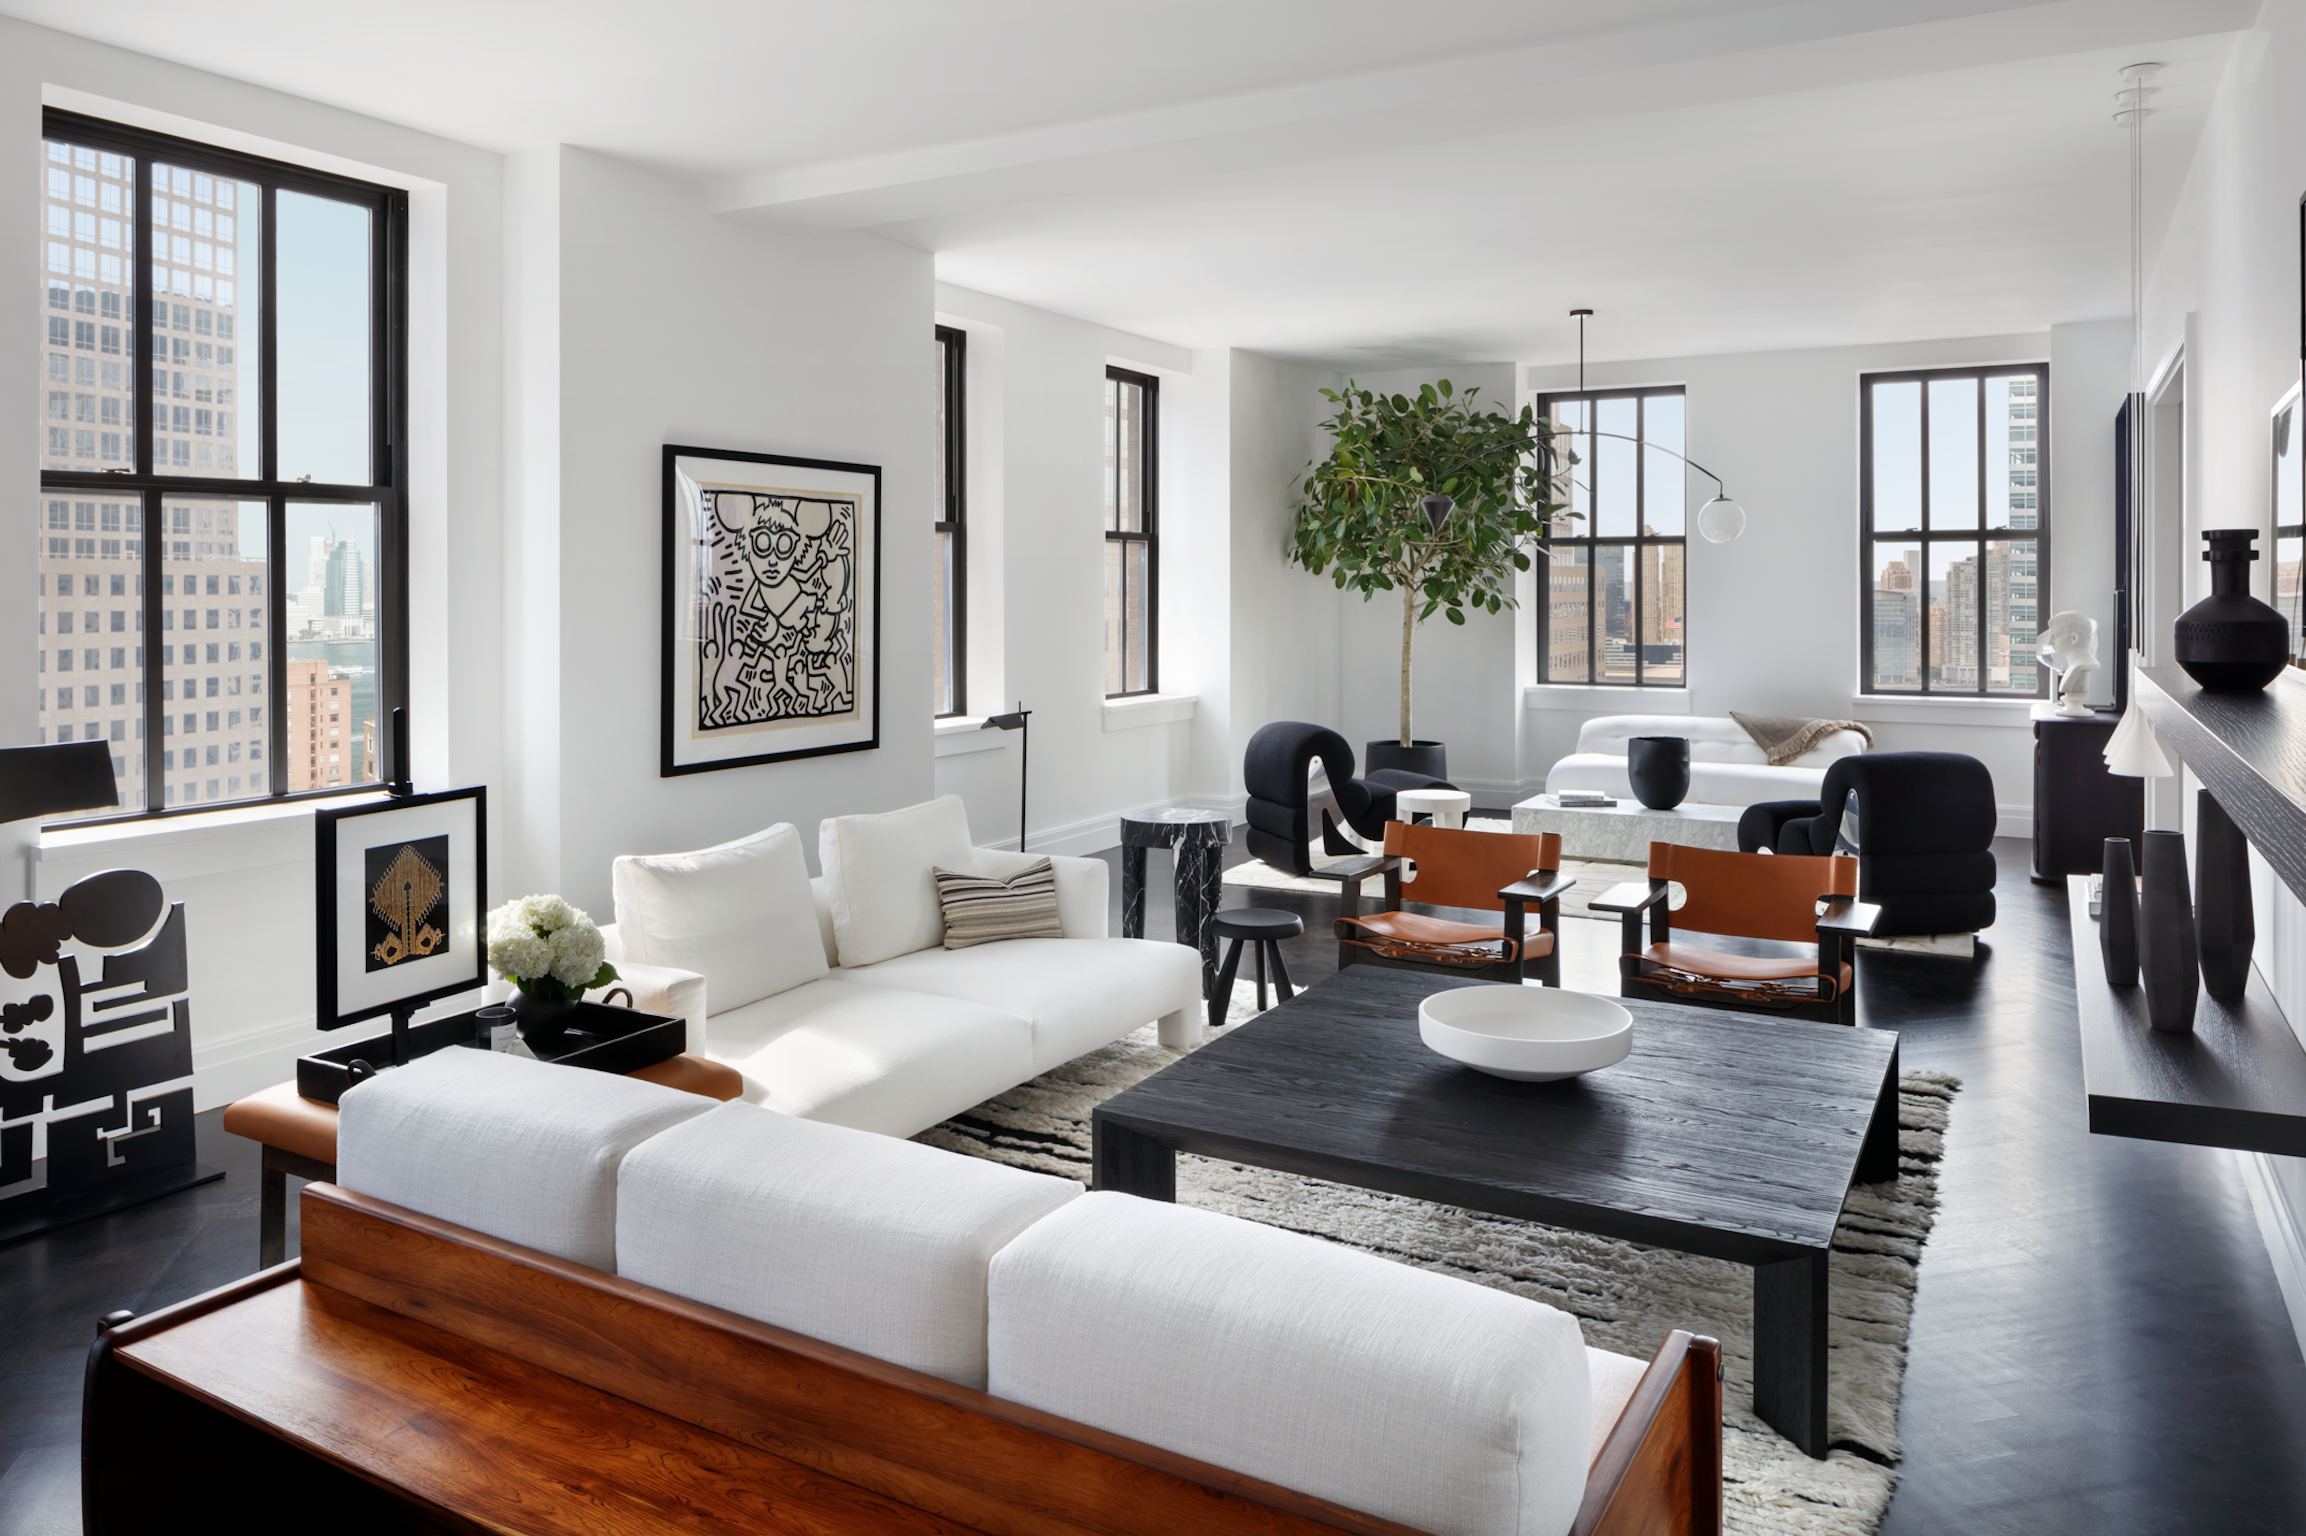 One Hundred Barclay Reveals Luxurious Timothy Godbold-Designed Model Residence